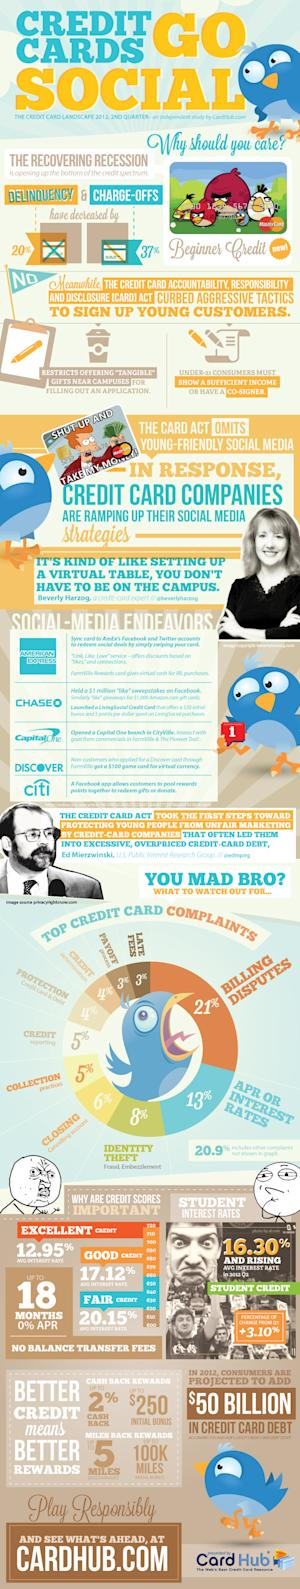 How Credit Card Companies Lure Customers on Social Media [INFOGRAPHIC]